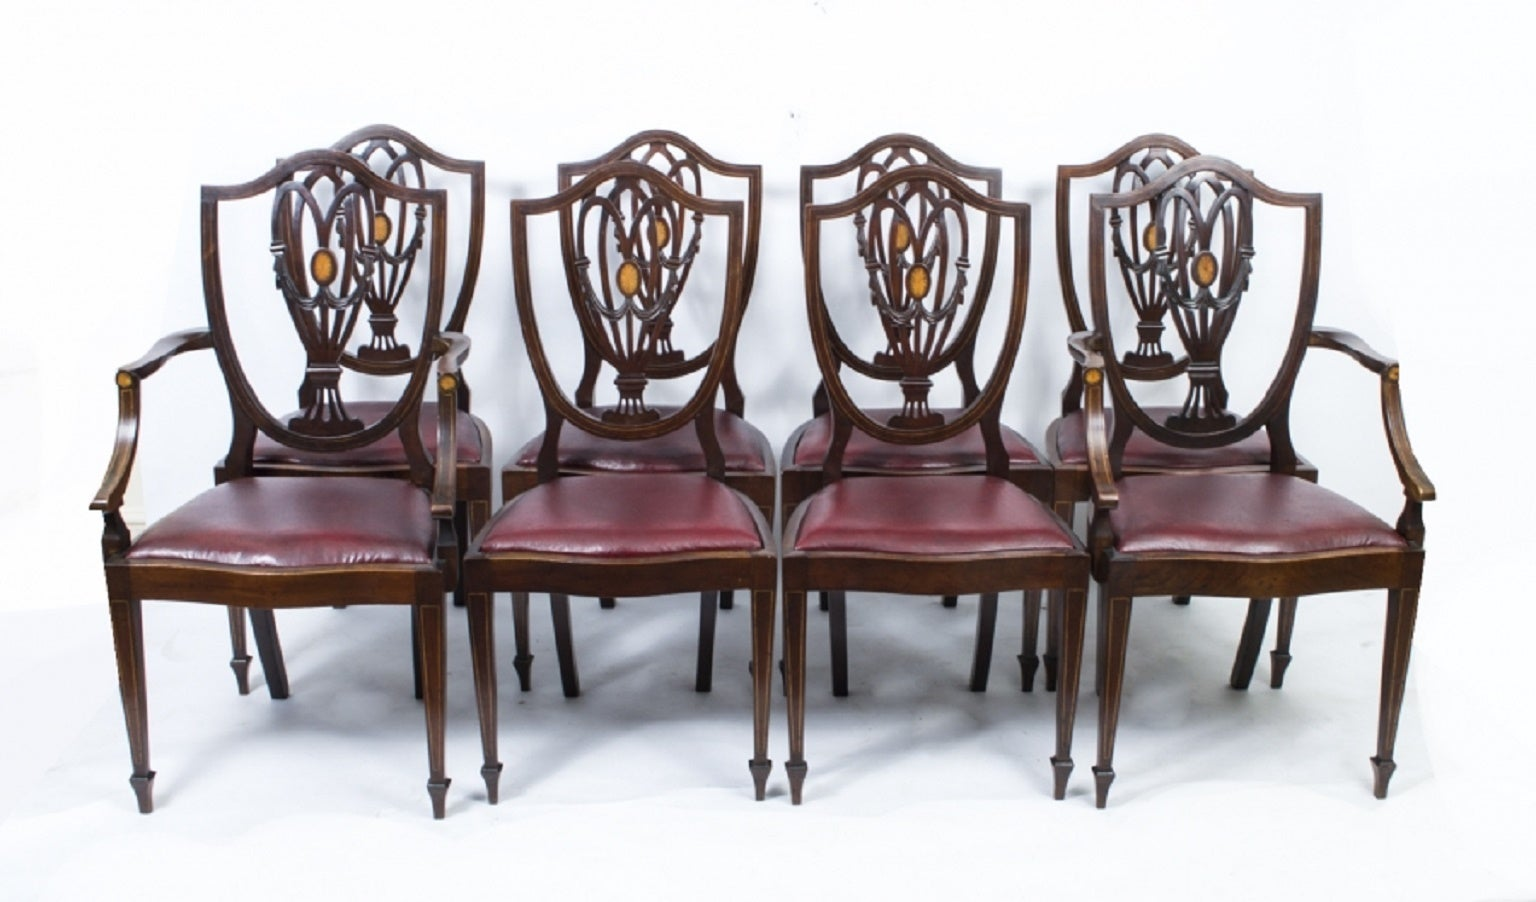 - Antique Edwardian Dining Table With Eight Chairs, Circa 1900 At 1stdibs